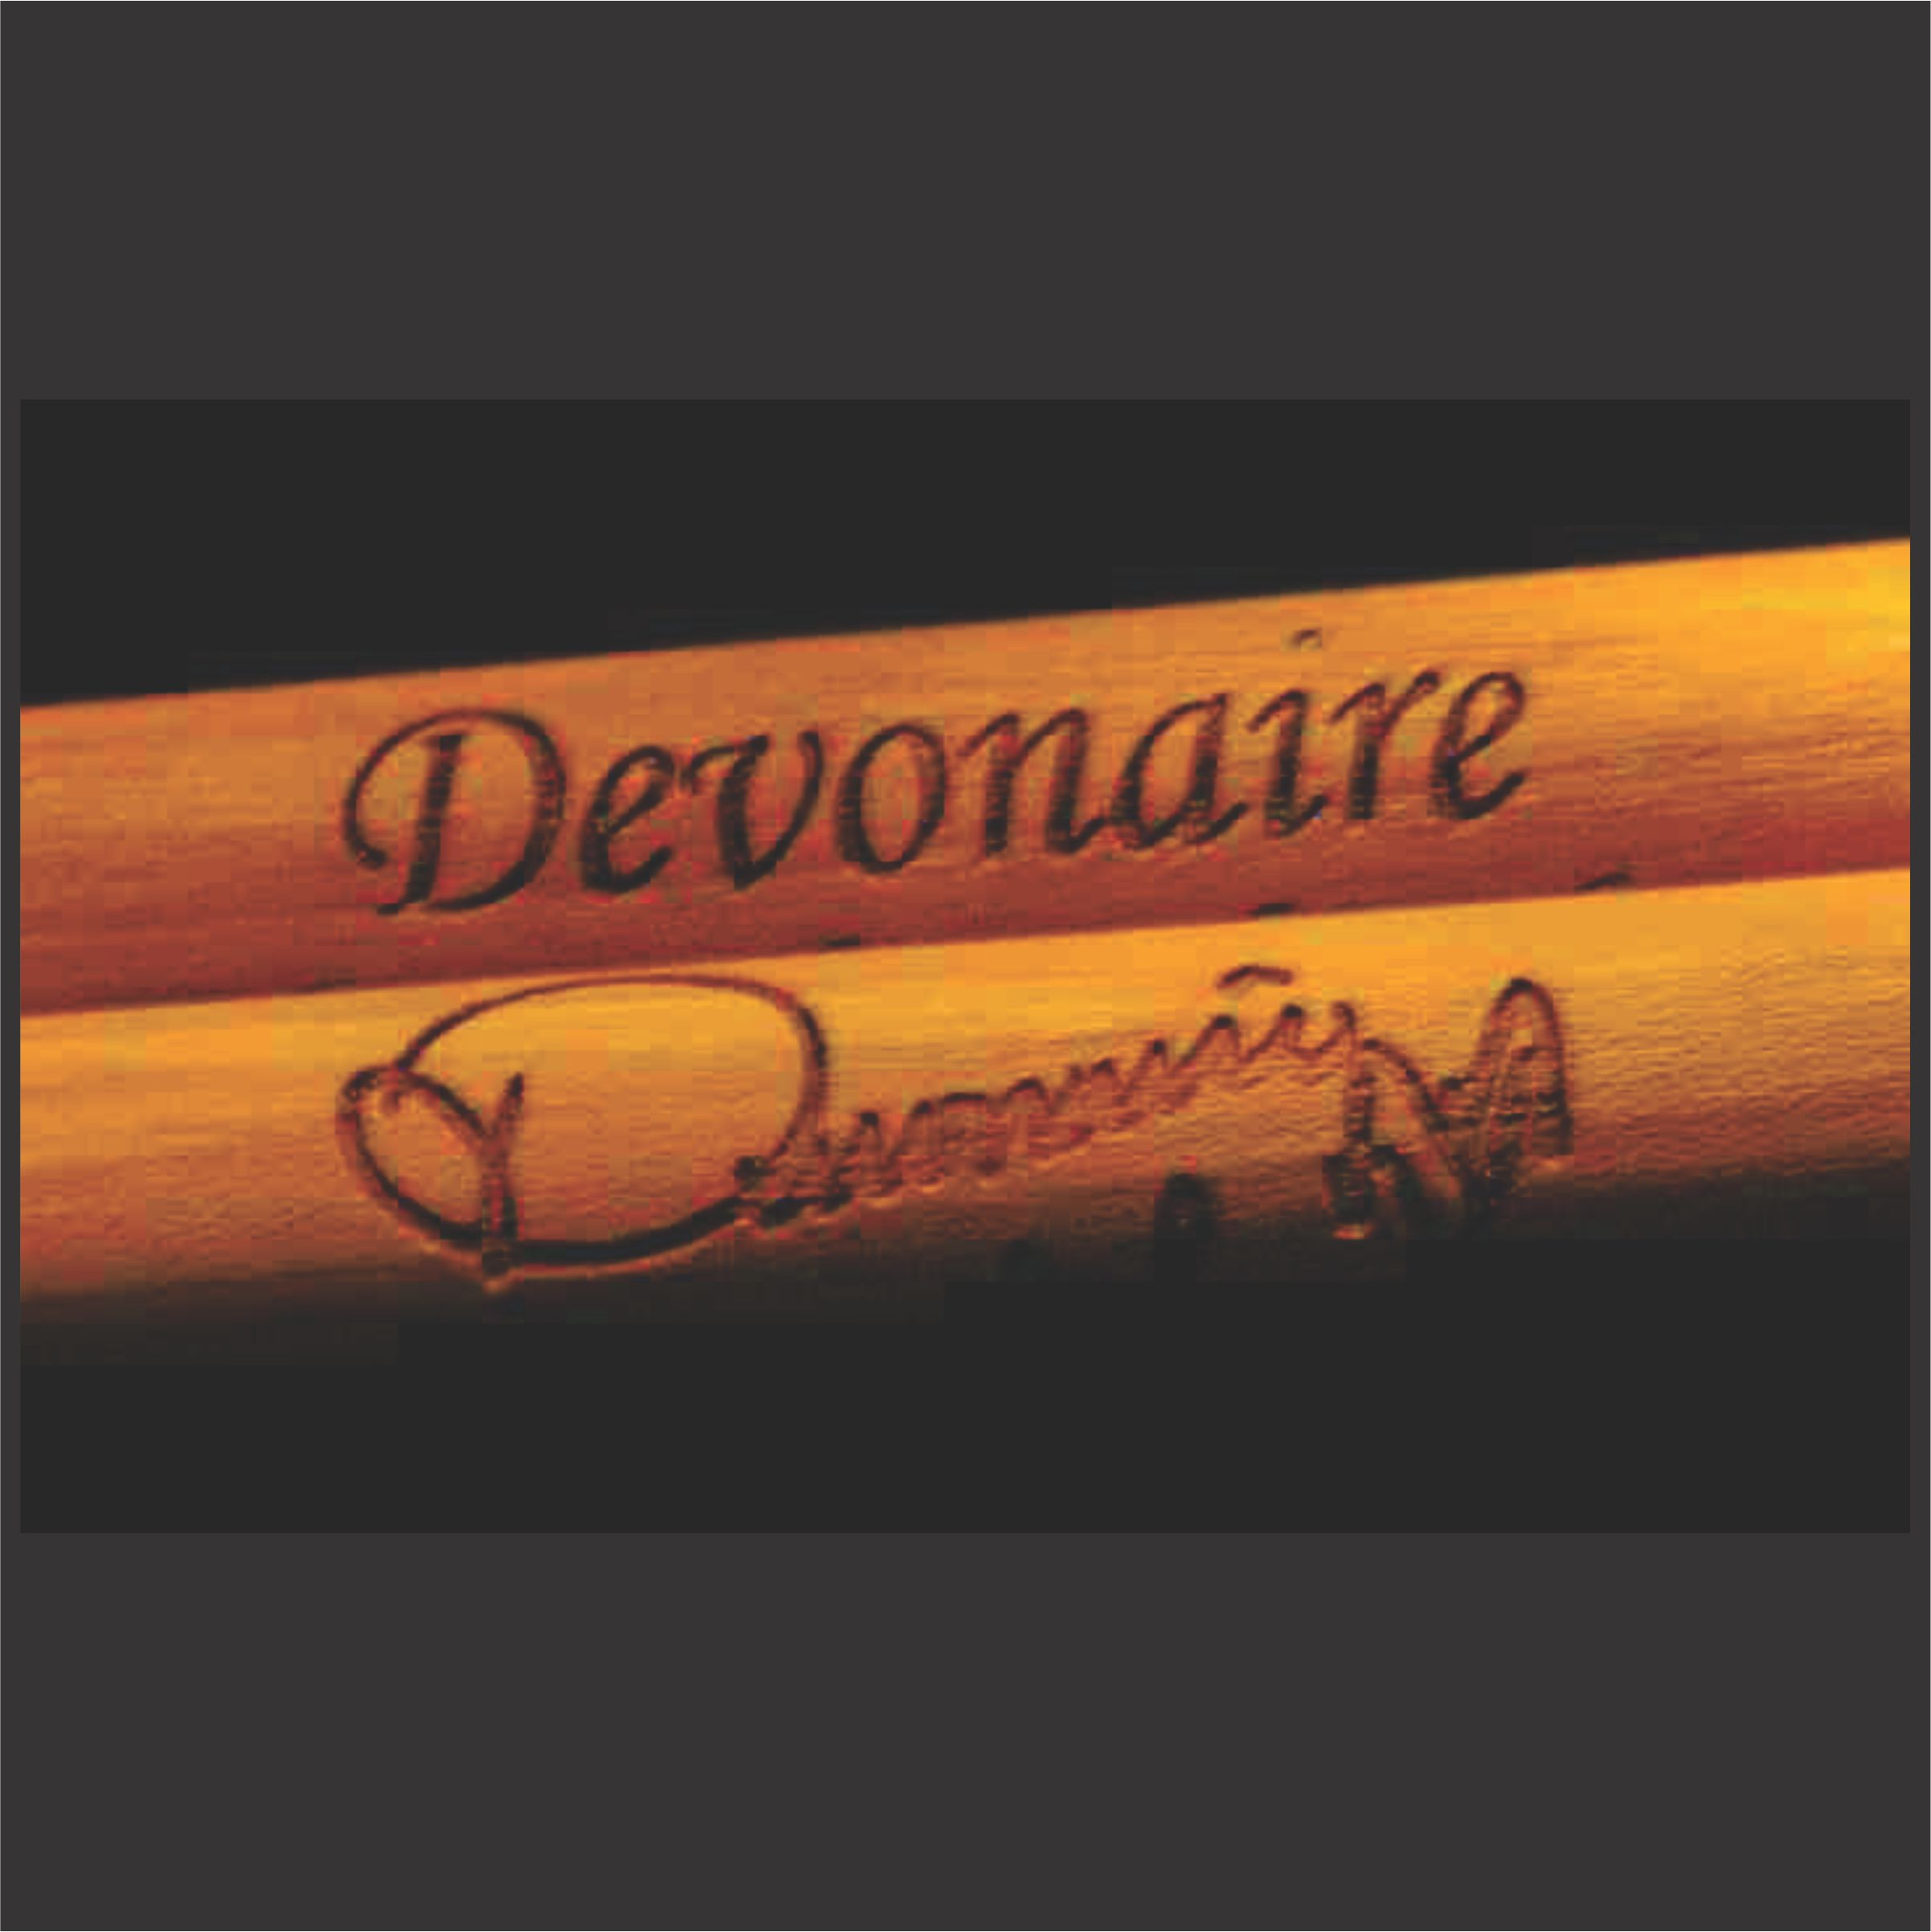 personalized drumstick set with drummer signature engraved